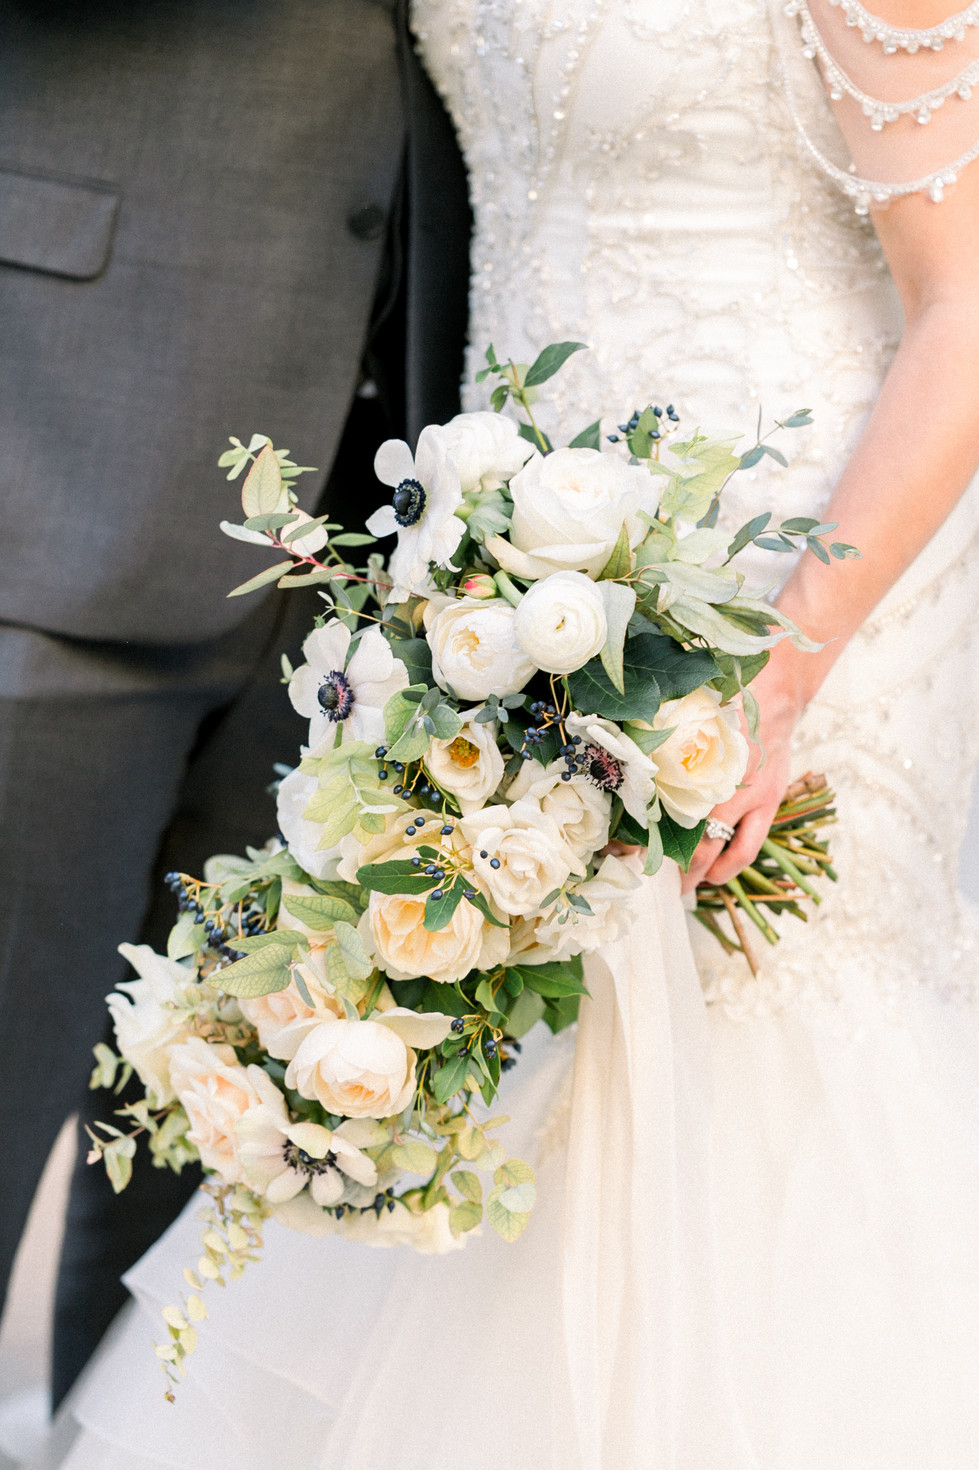 WHITE AND CREAM BRIDAL BOUQUET WITH ROSES, RANUNCULUS, ANEMONES, AND BERRIES, TIED WITH ANTIQUE WHITE SILK RIBBONS. PHOTO: LIANNA MARIE